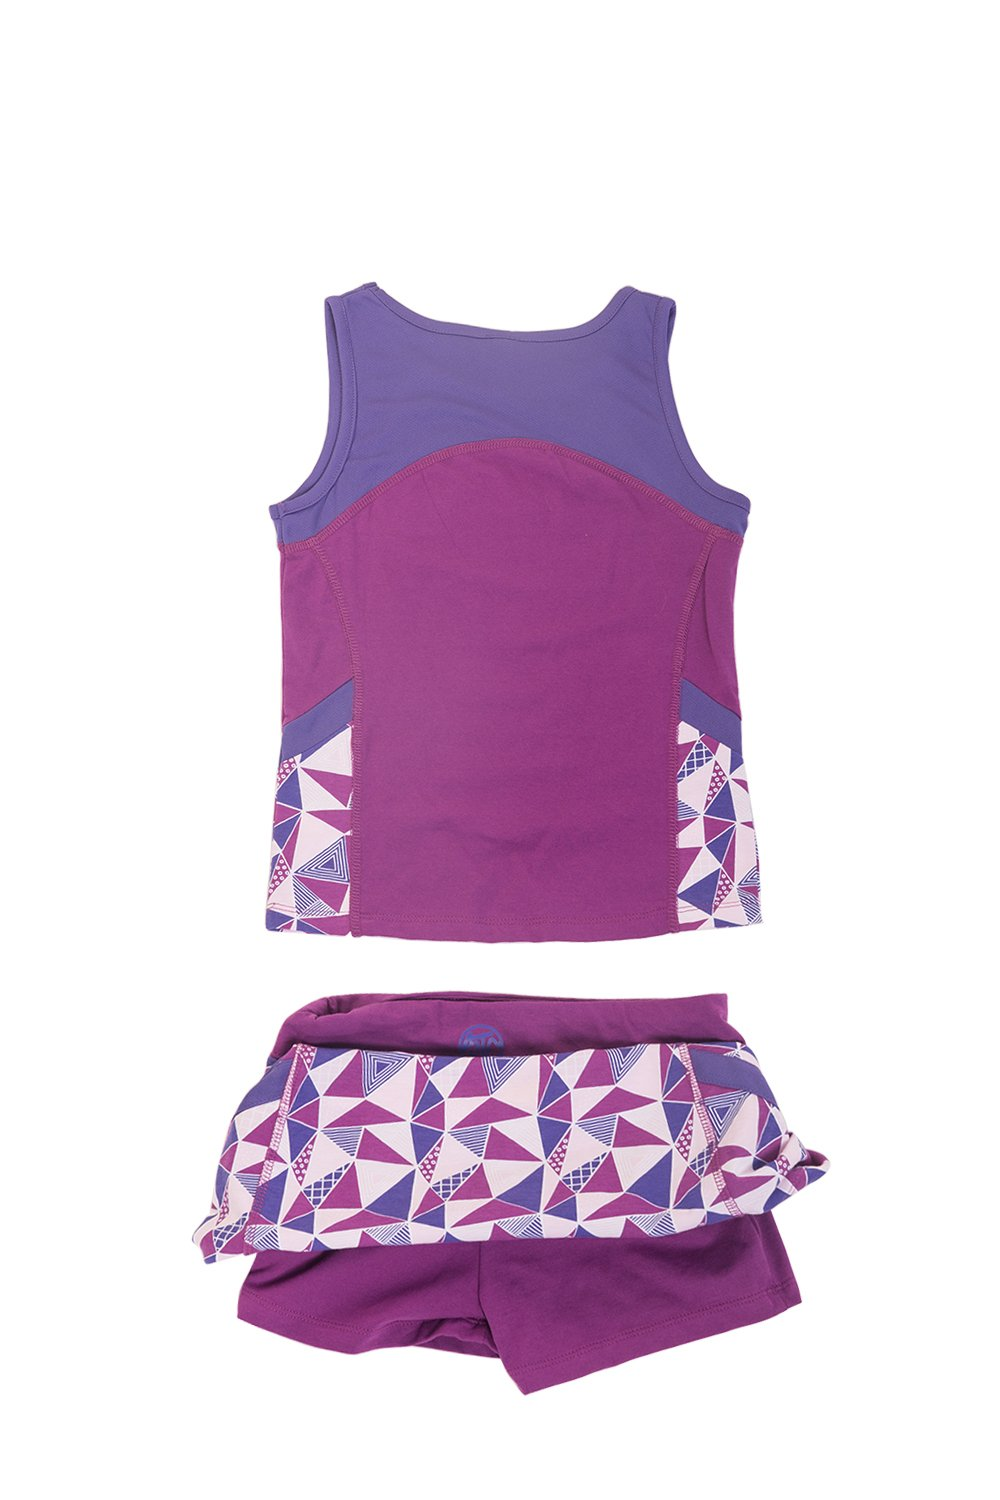 Girls Tennis & Golf Tank and Skirt Set with Built in Shorts Sparkaling Grape/Purple Size L